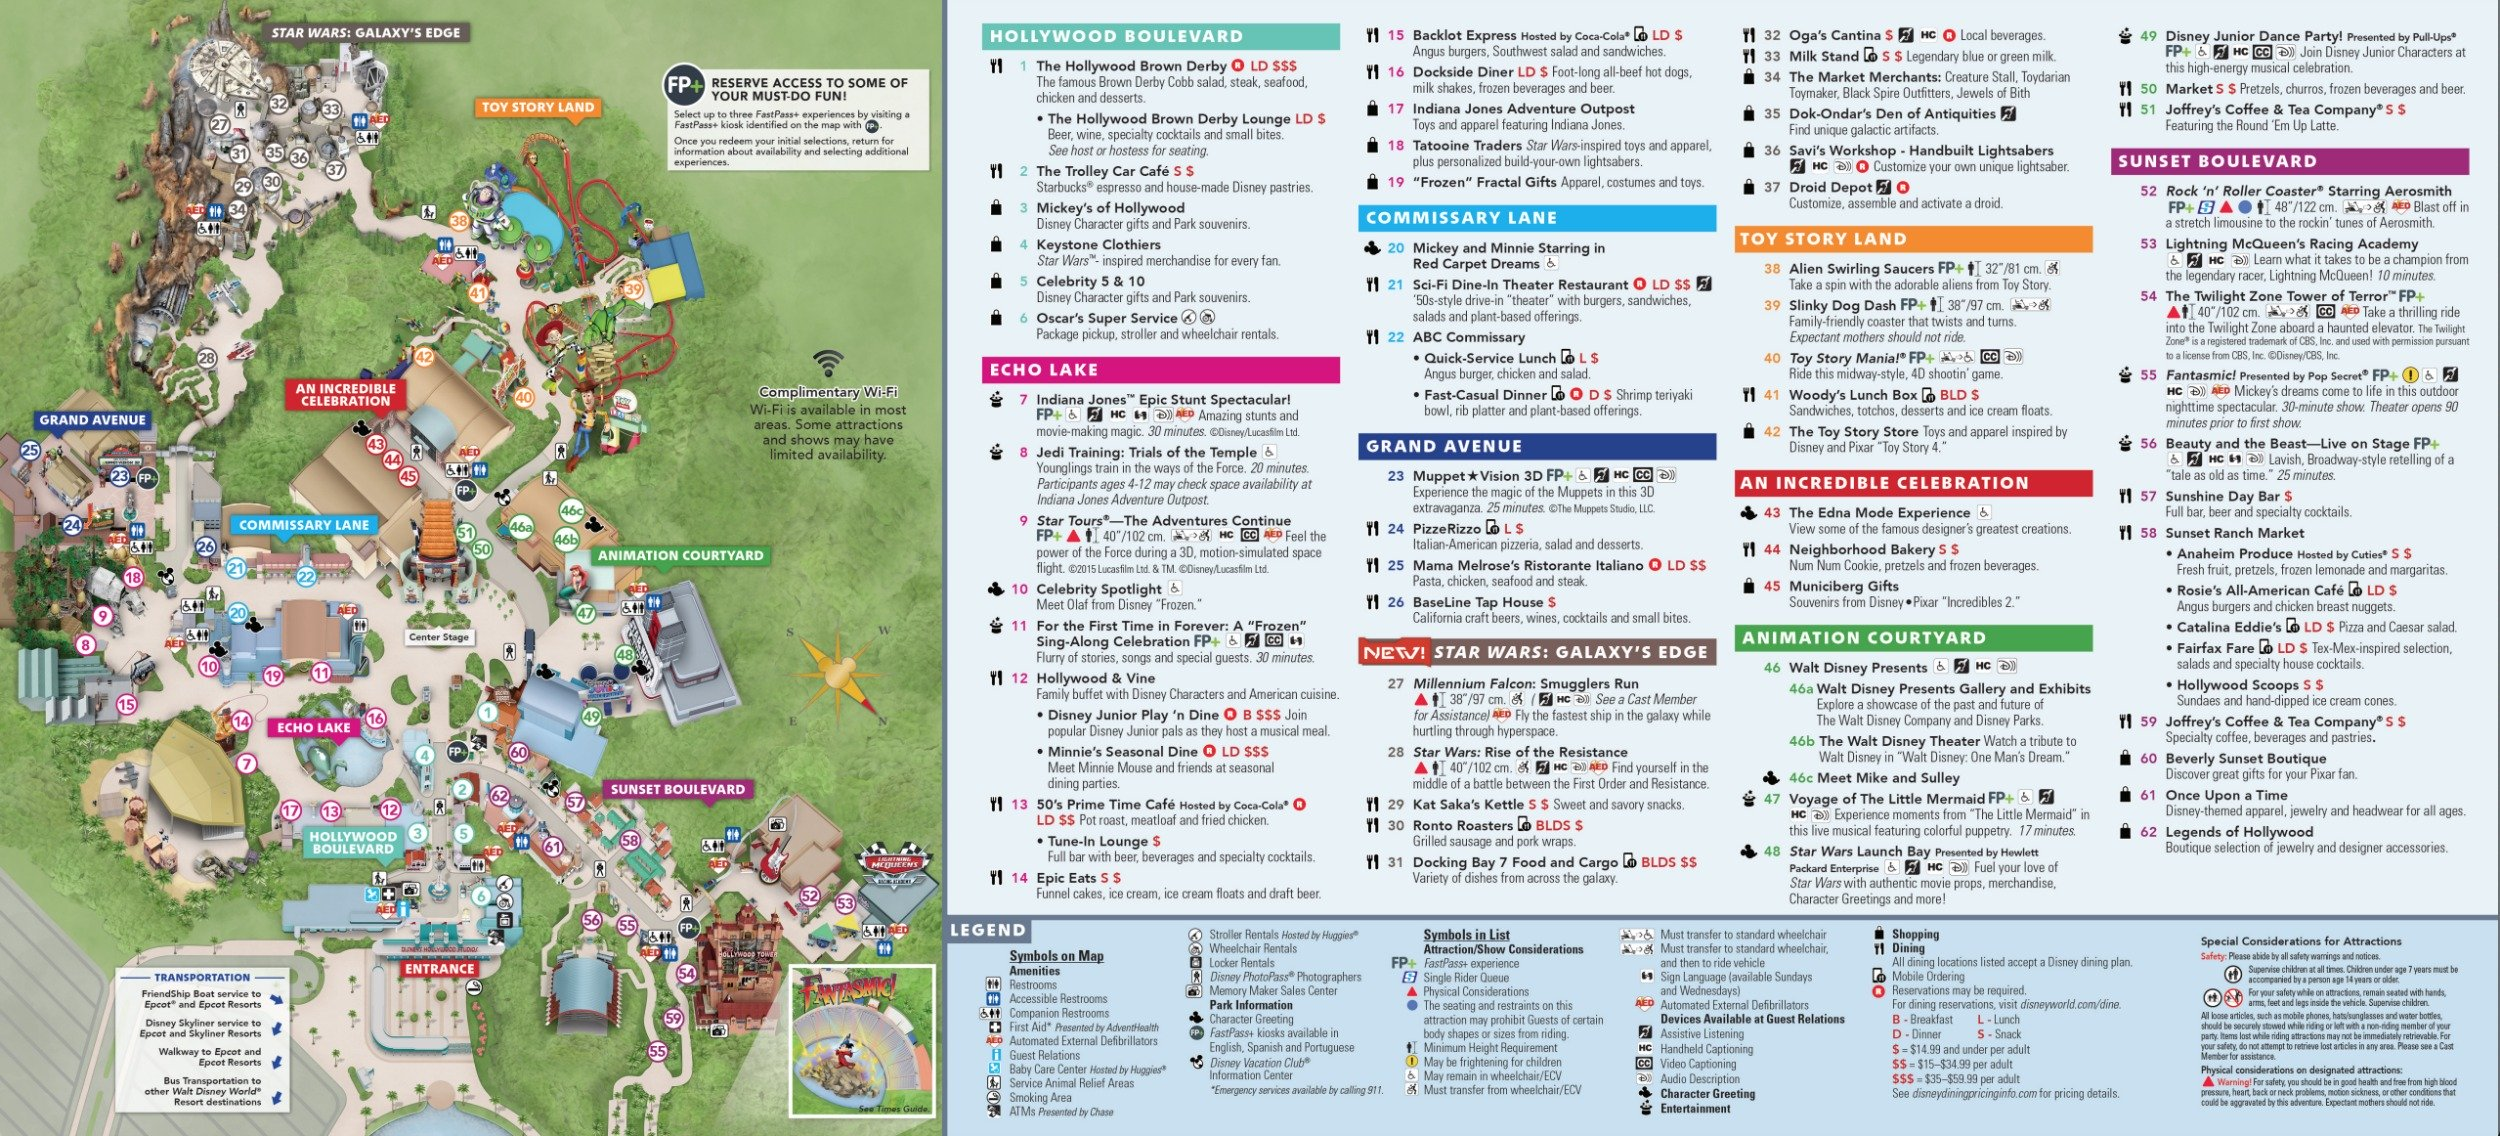 Hollywood Studios Map 2020